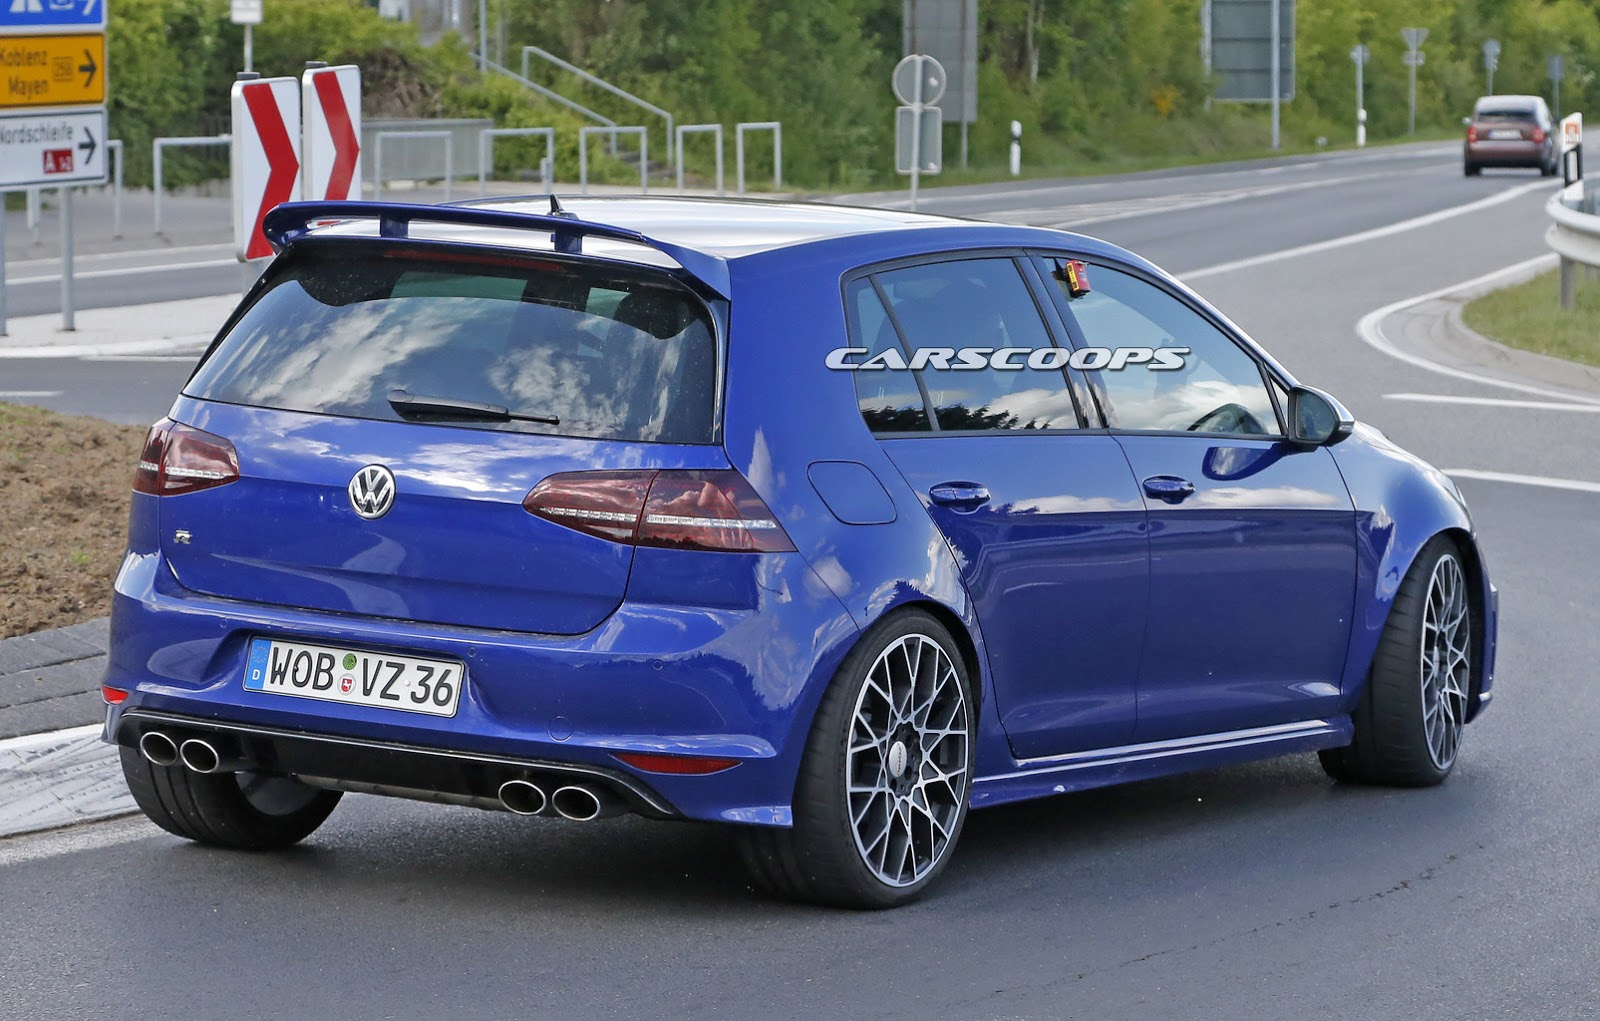 spied vw nears supercar territory with golf r400 hyper hatch carscoops. Black Bedroom Furniture Sets. Home Design Ideas